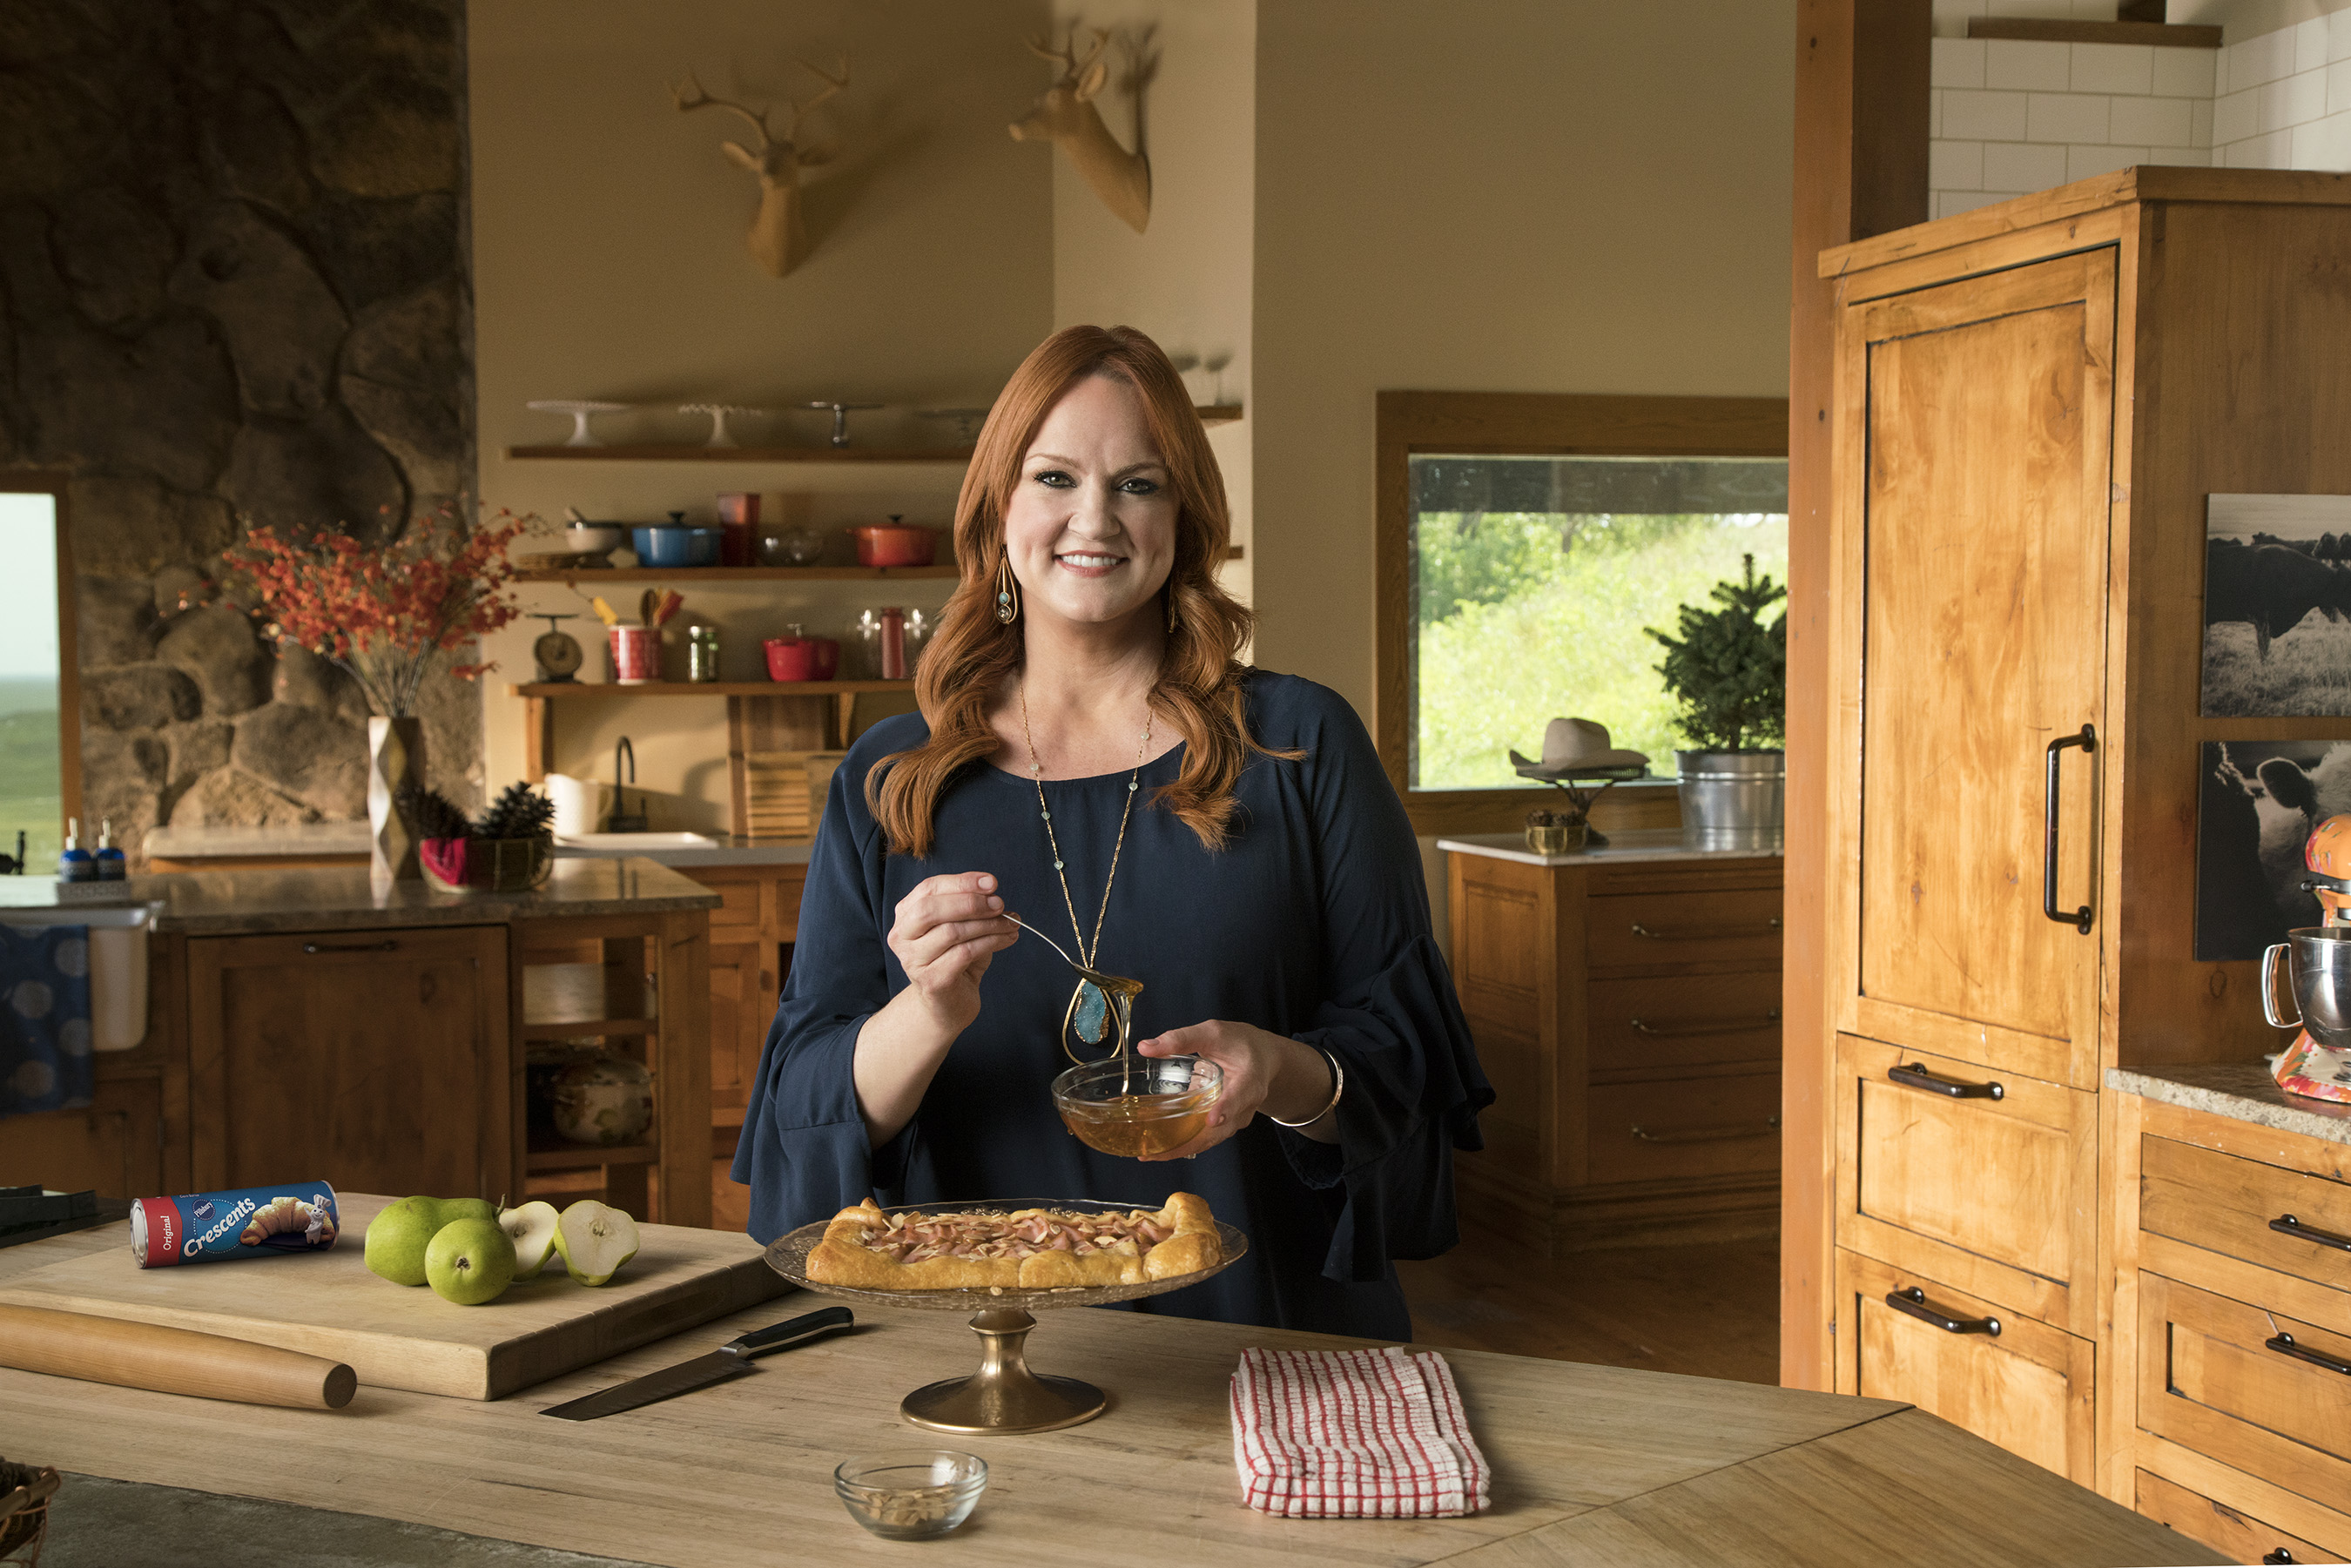 Ree Drummond and Pillsbury look to celebrate the memories made by American home cooks every day in kitchens around the country for this year's Bake-Off® Contest.